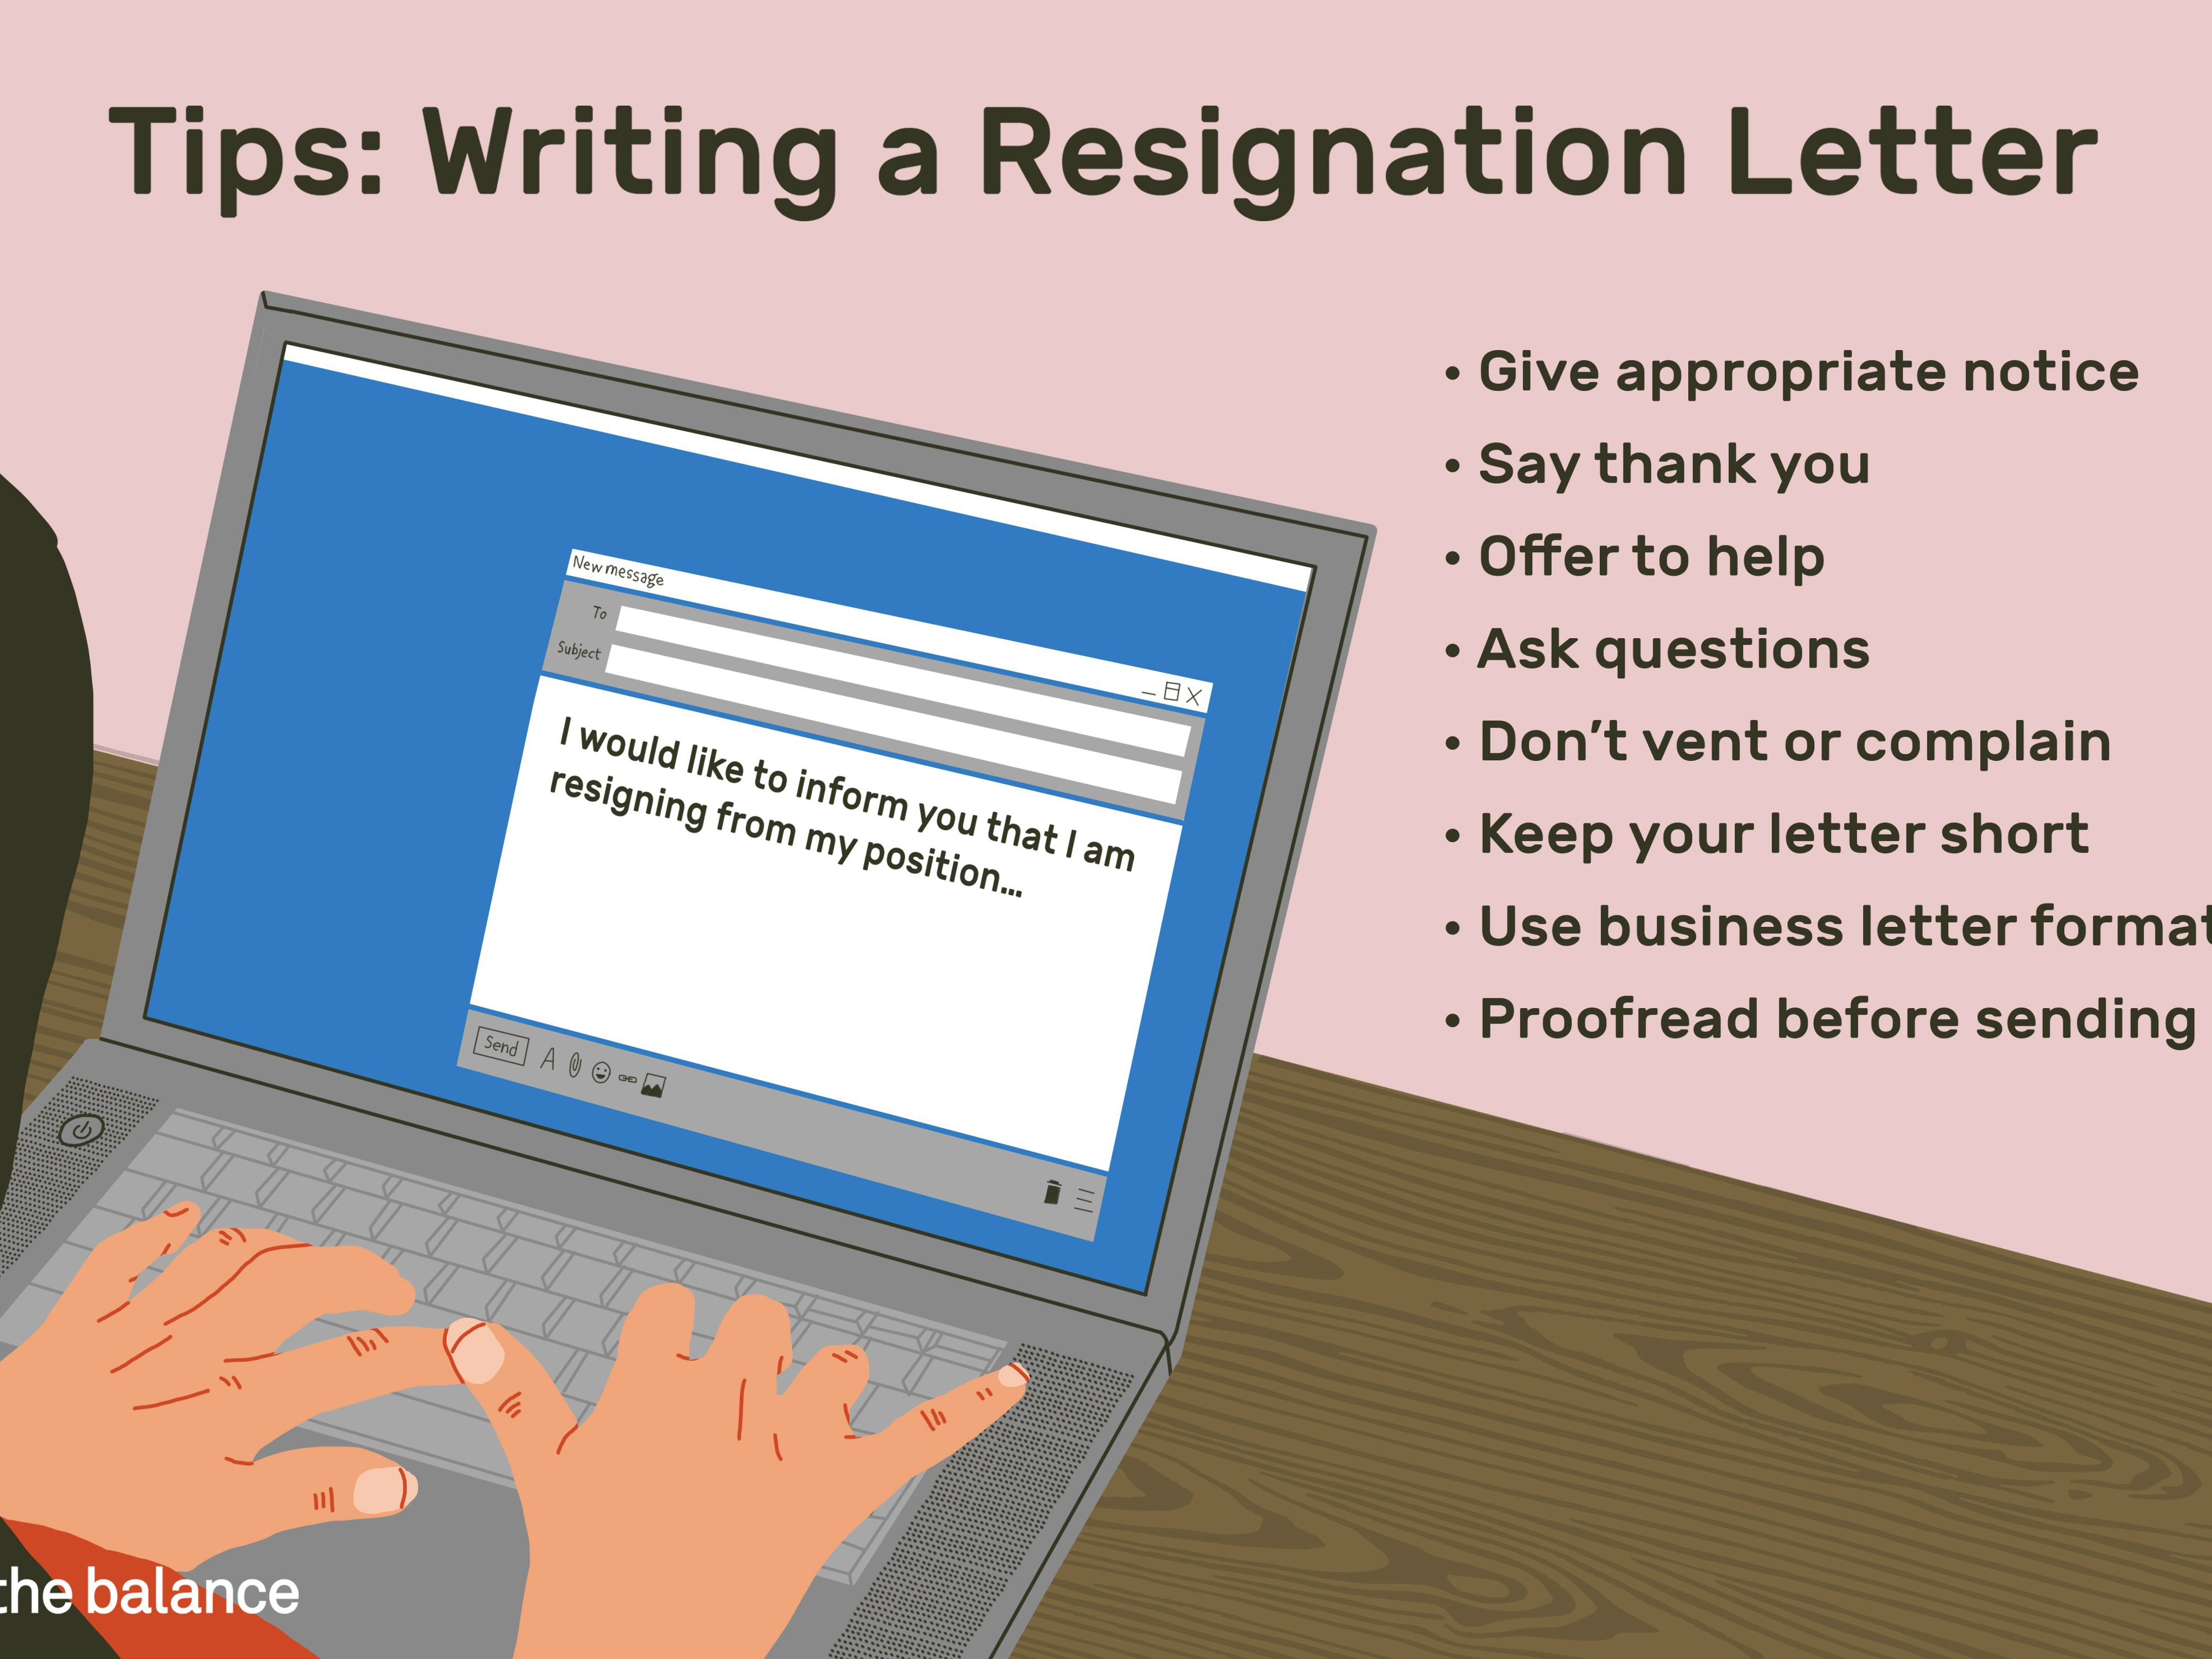 Sample Resignation Letter for Quitting Your Job